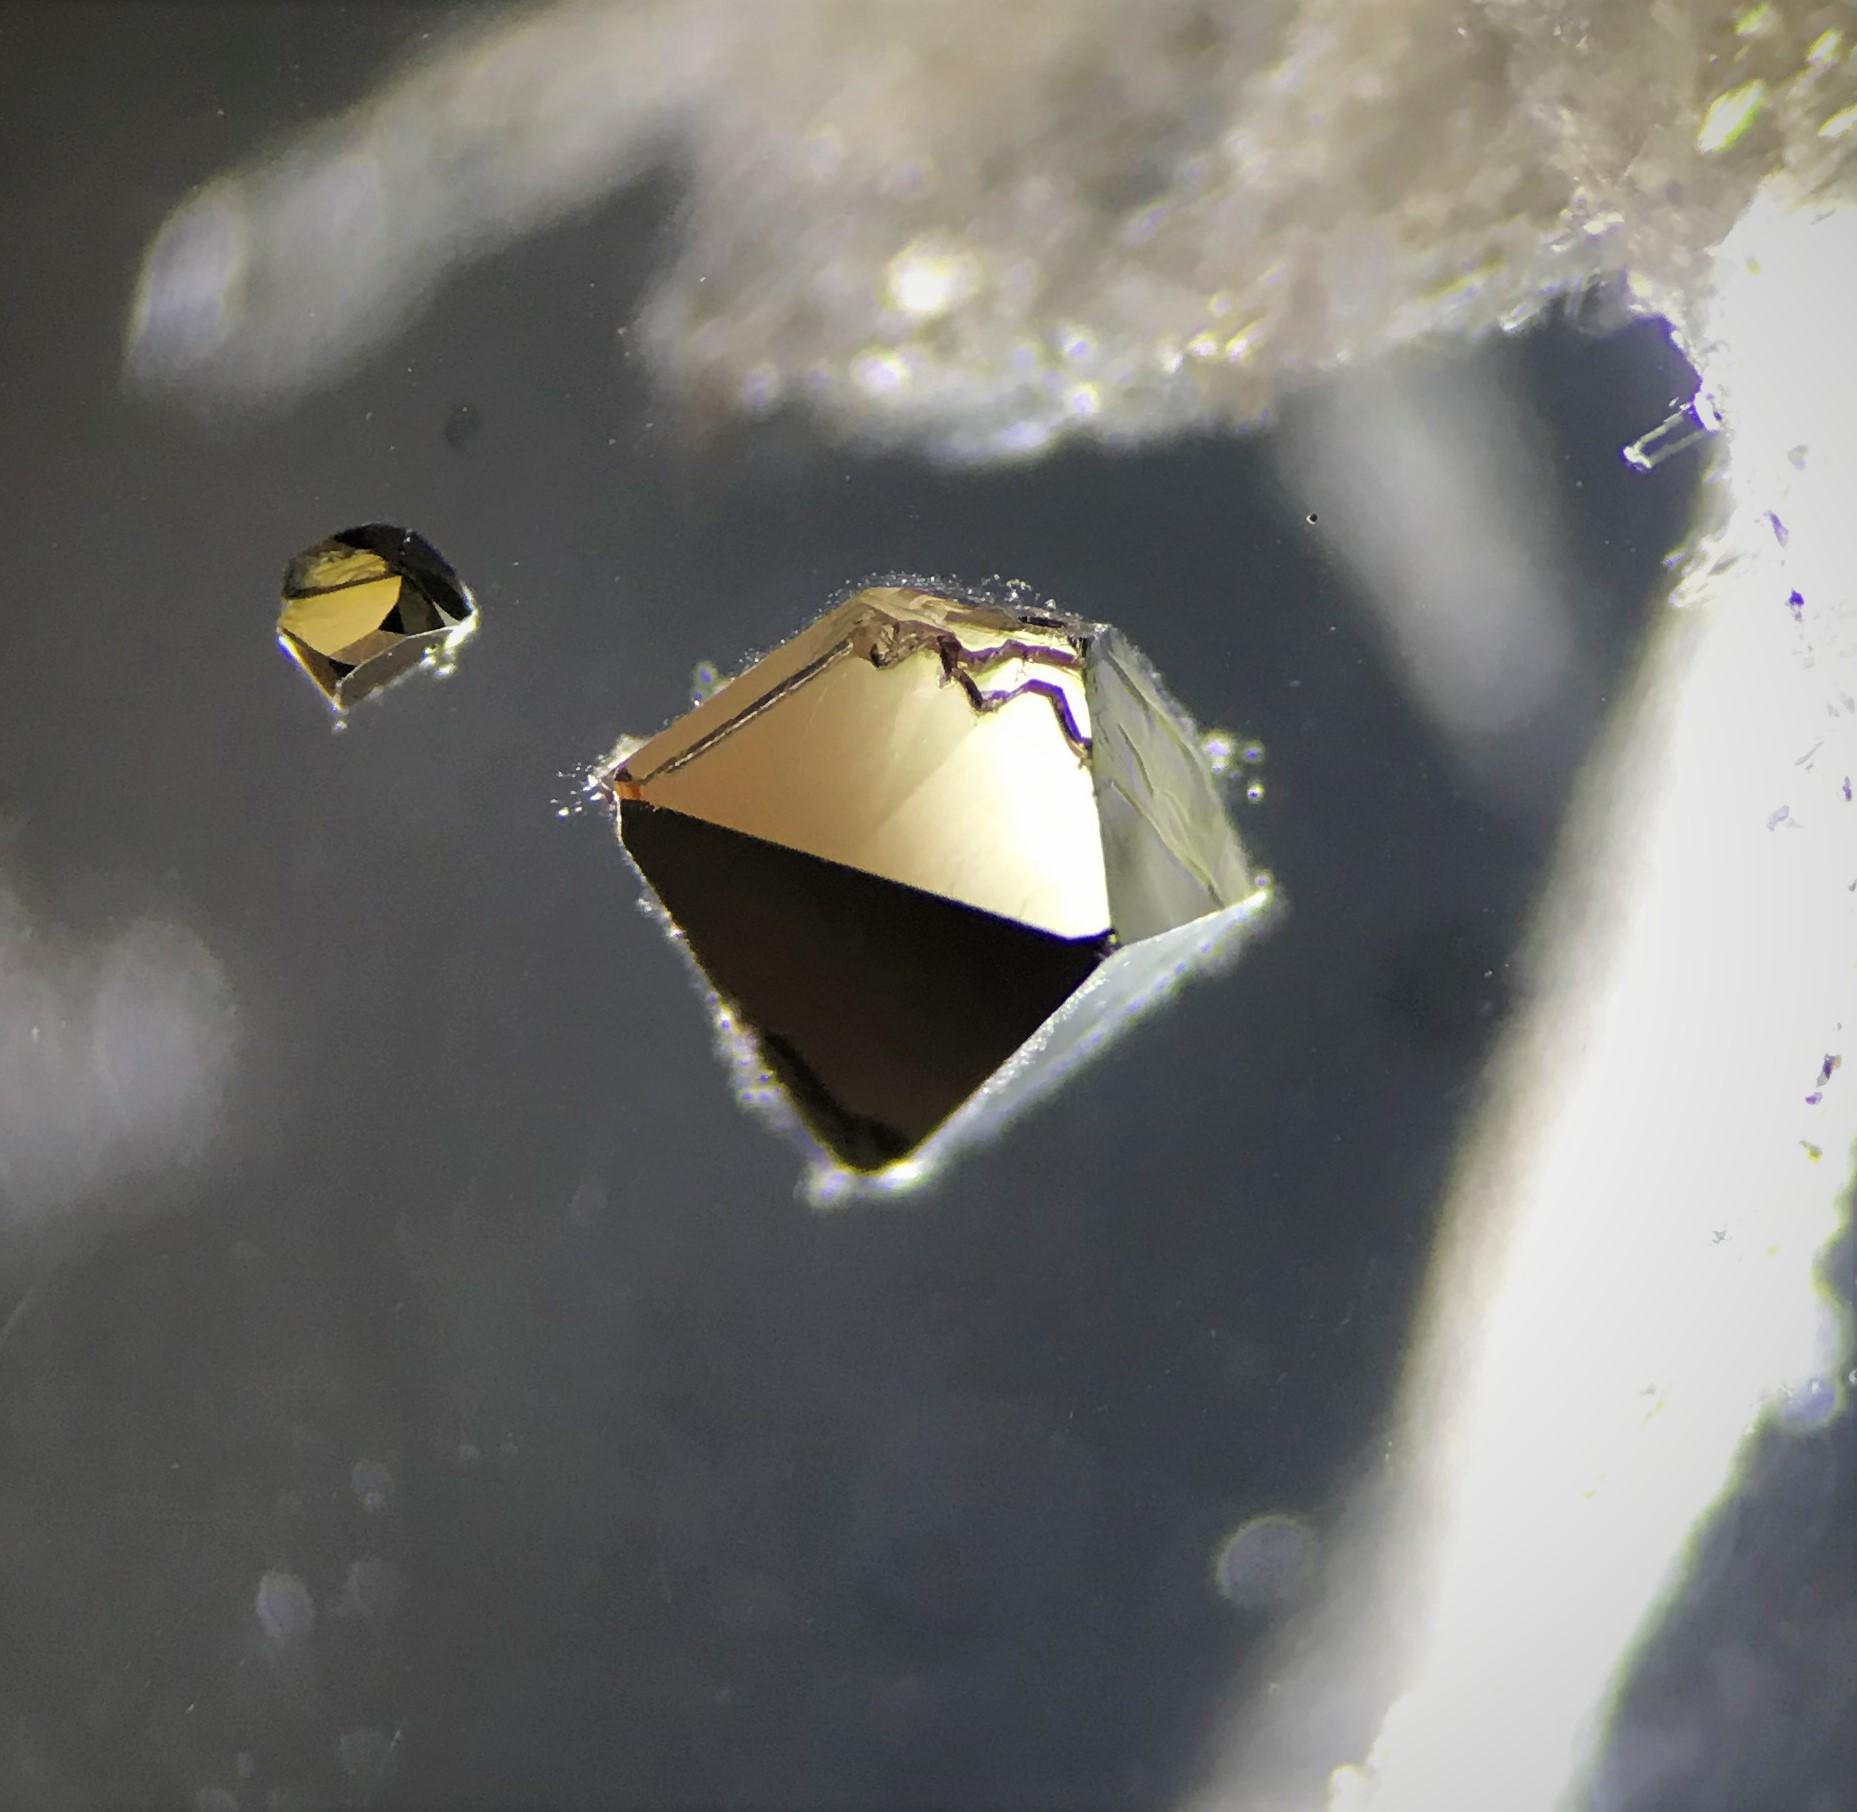 pyrite octahedron quartz inclusions Gem A Blog Types of Quartz Inclusions